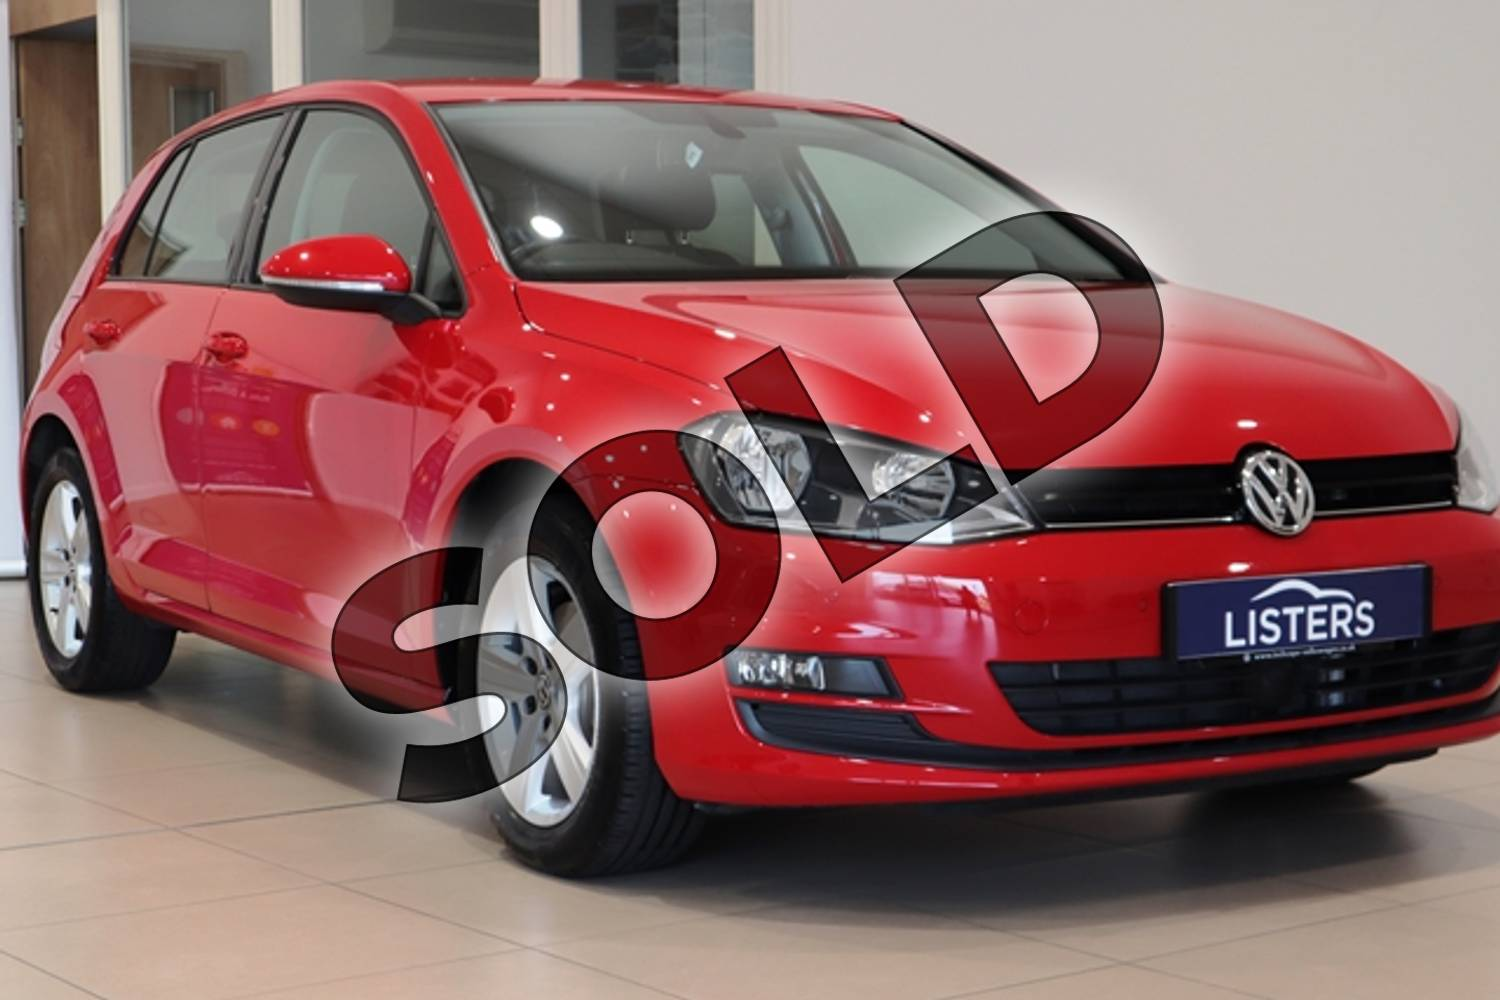 2014 Volkswagen Golf Hatchback 1.4 TSI Match 5dr in Solid - Tornado red at Listers U Northampton